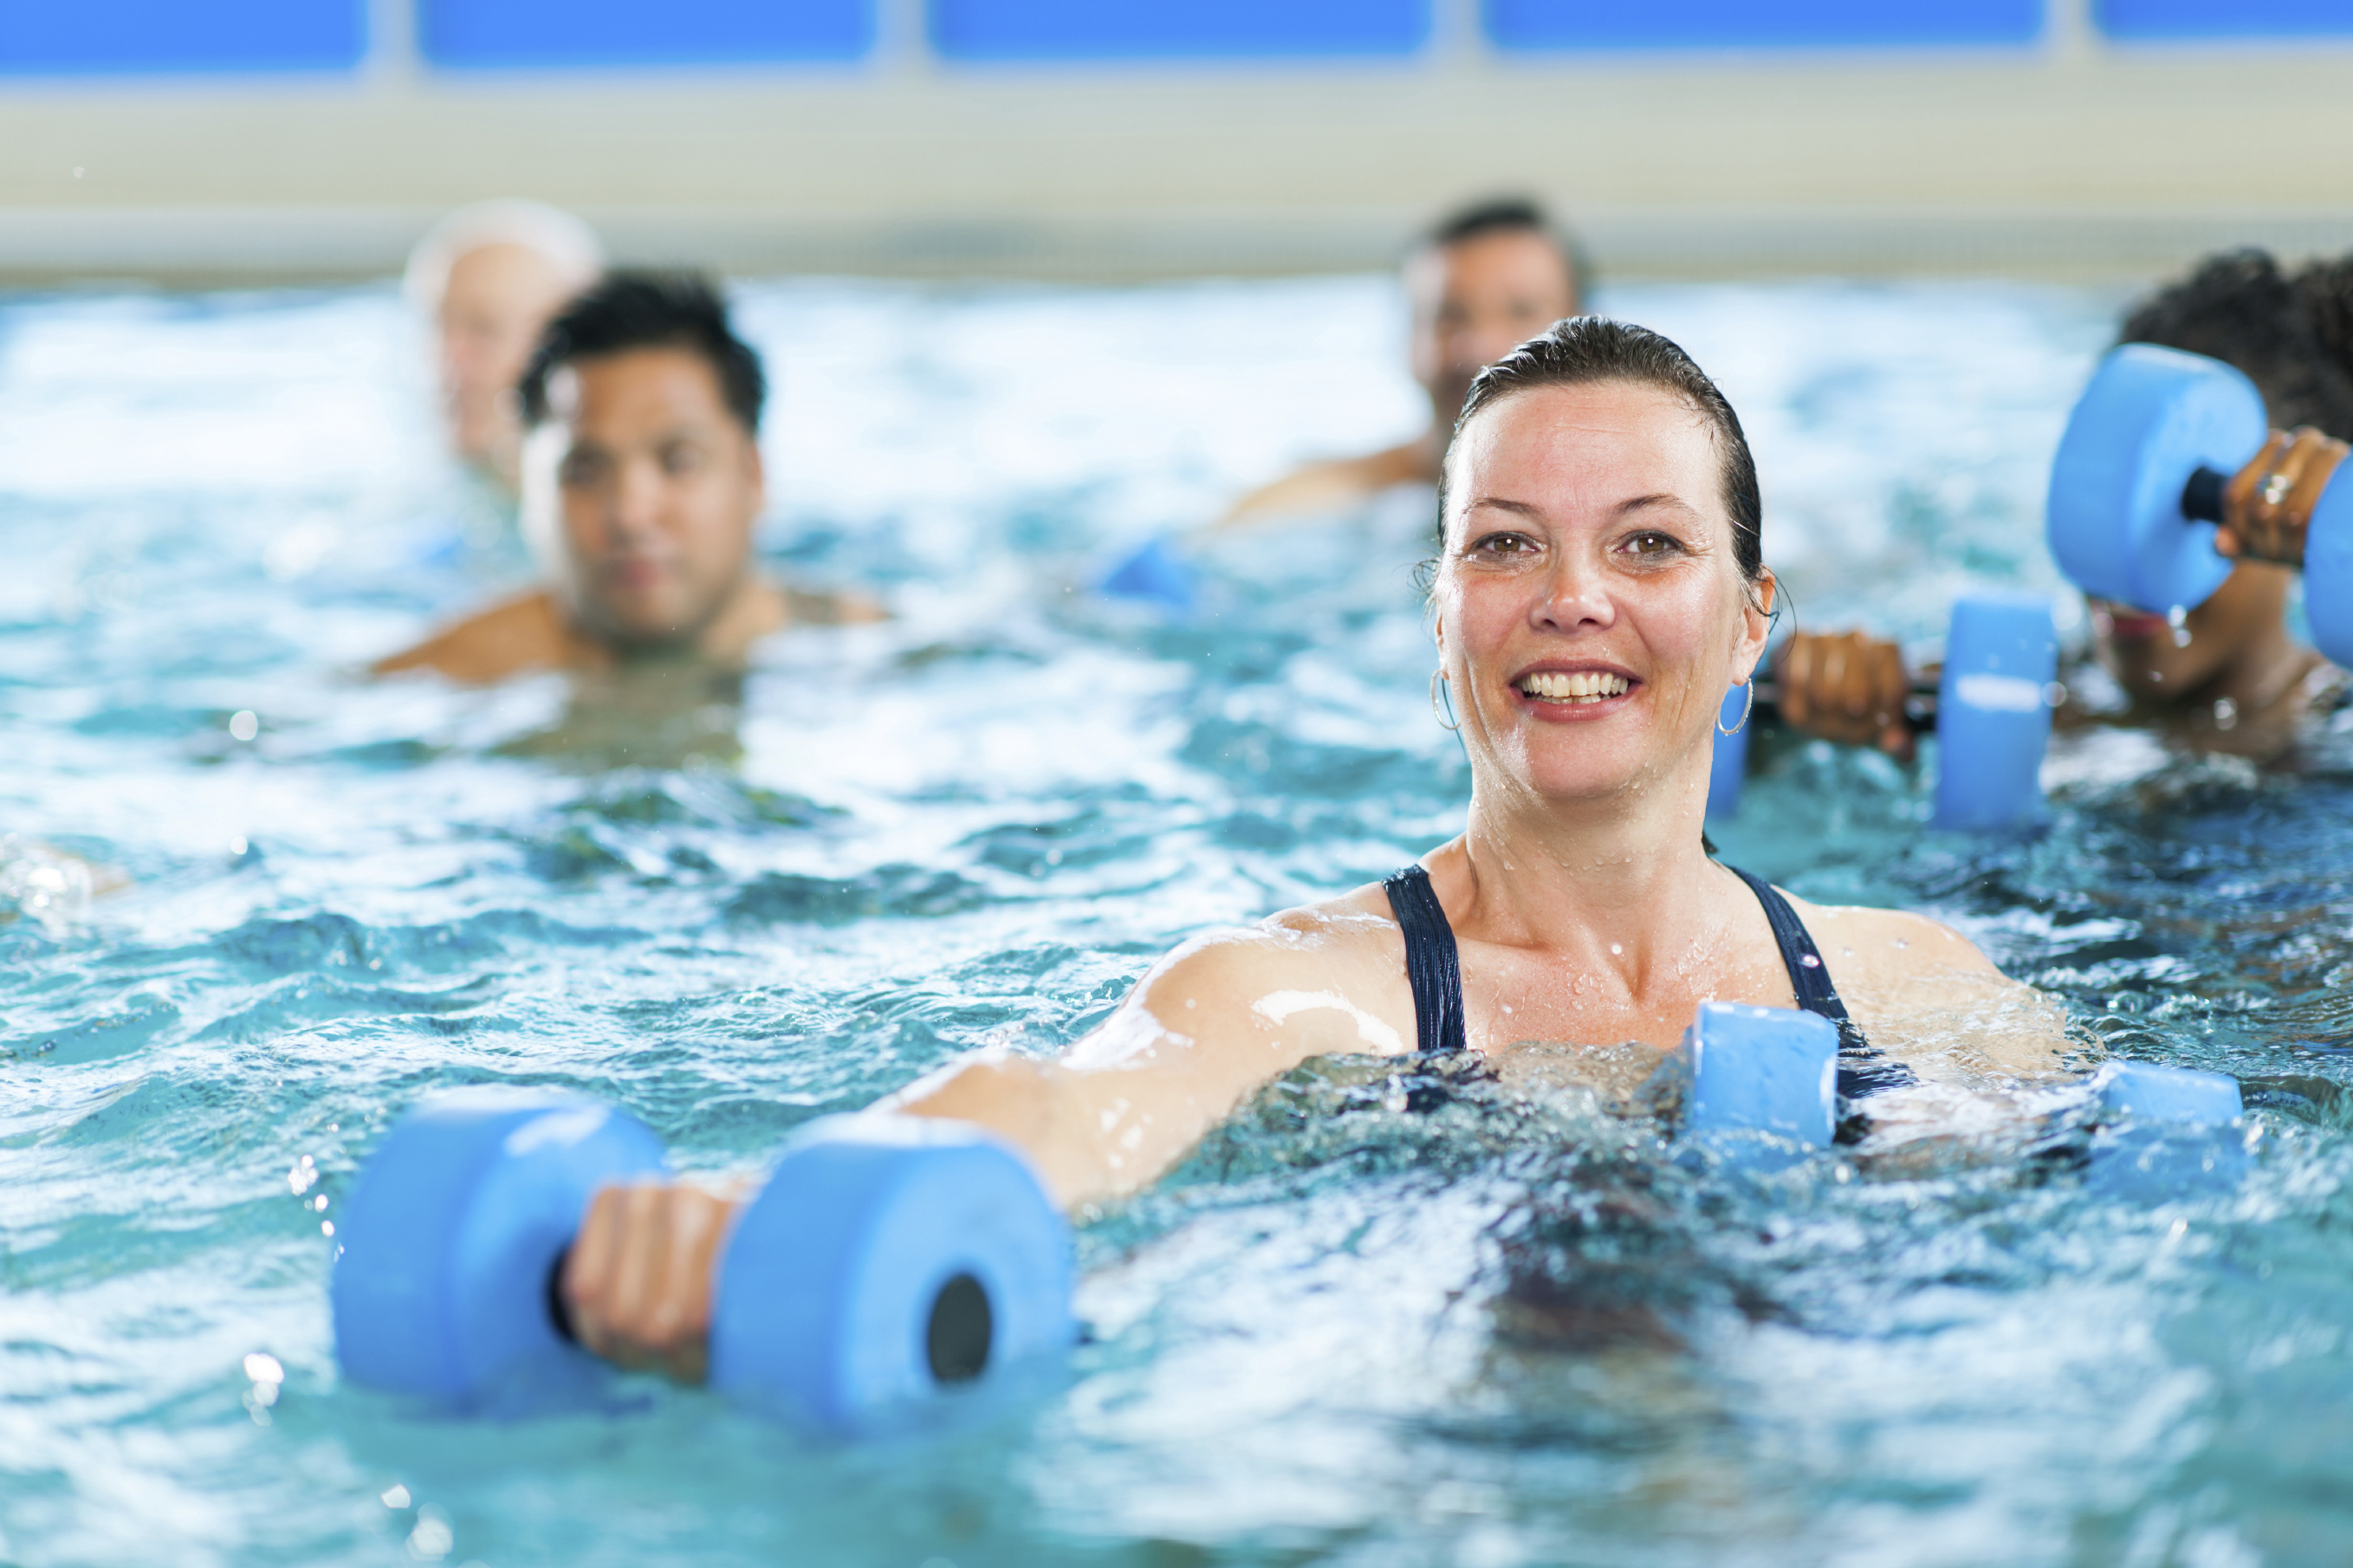 water aerobics Water aerobics is the performance of aerobic exercise in fairly shallow water  such as in a swimming pool done mostly vertically and without swimming  typically.